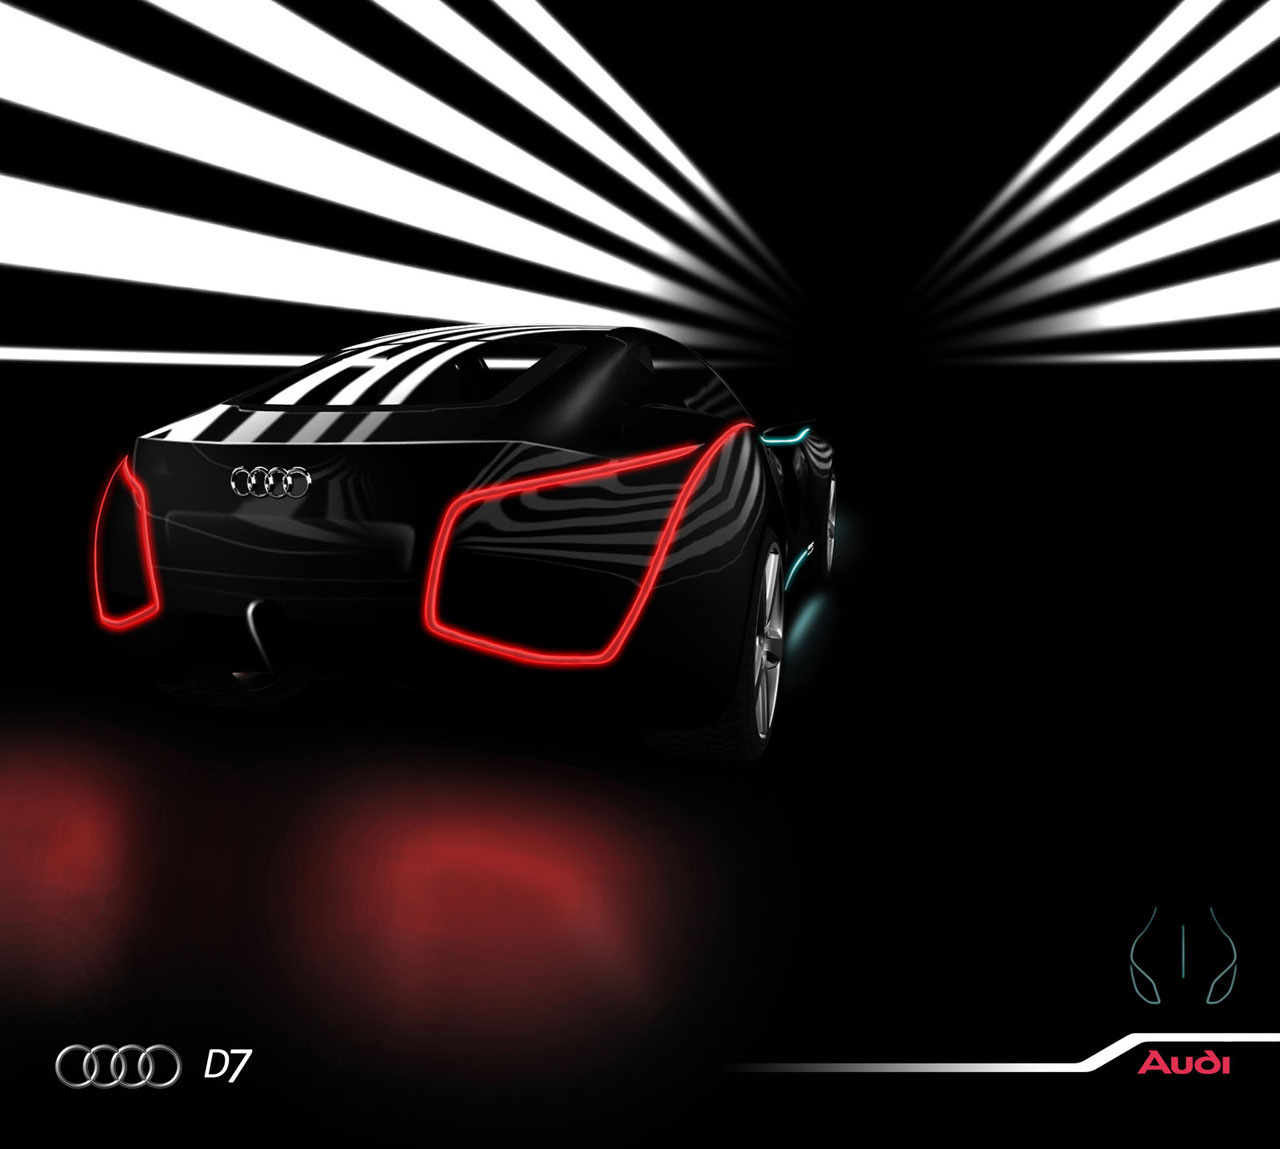 Audi Images Audi Cool Ad HD Wallpaper And Background Photos - Cool audi